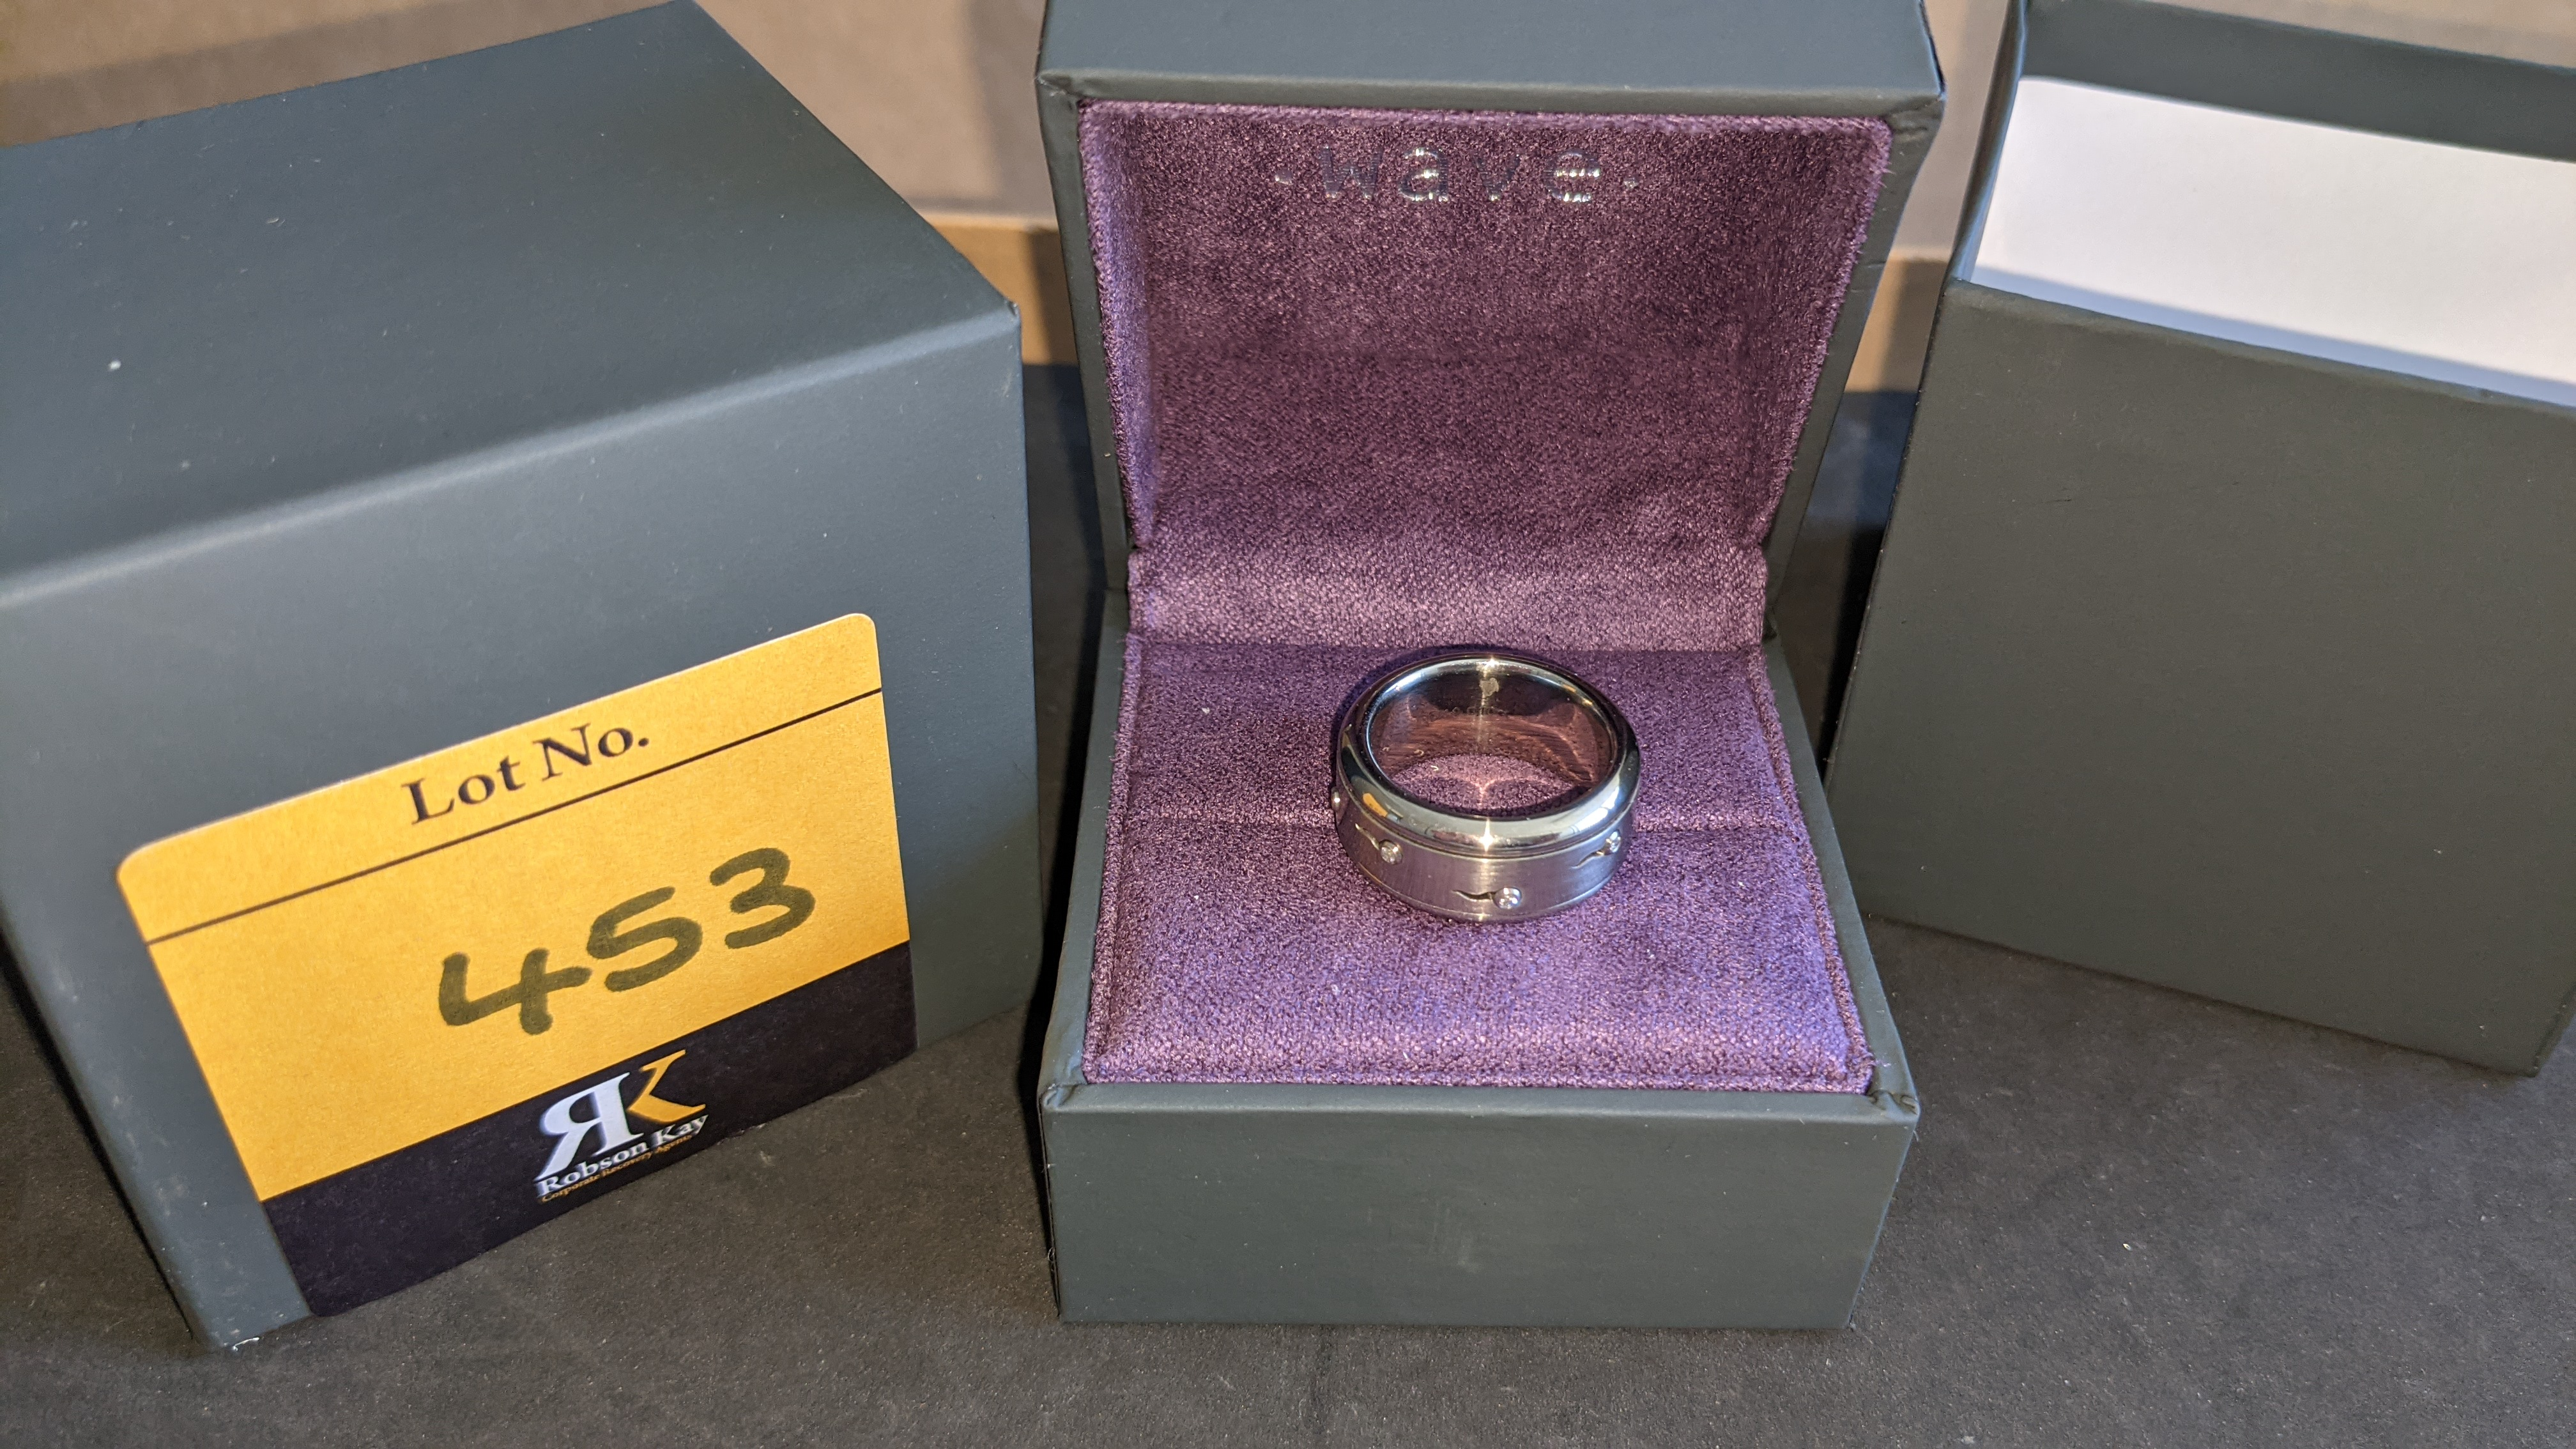 Stainless steel & diamond spin ring RRP £455